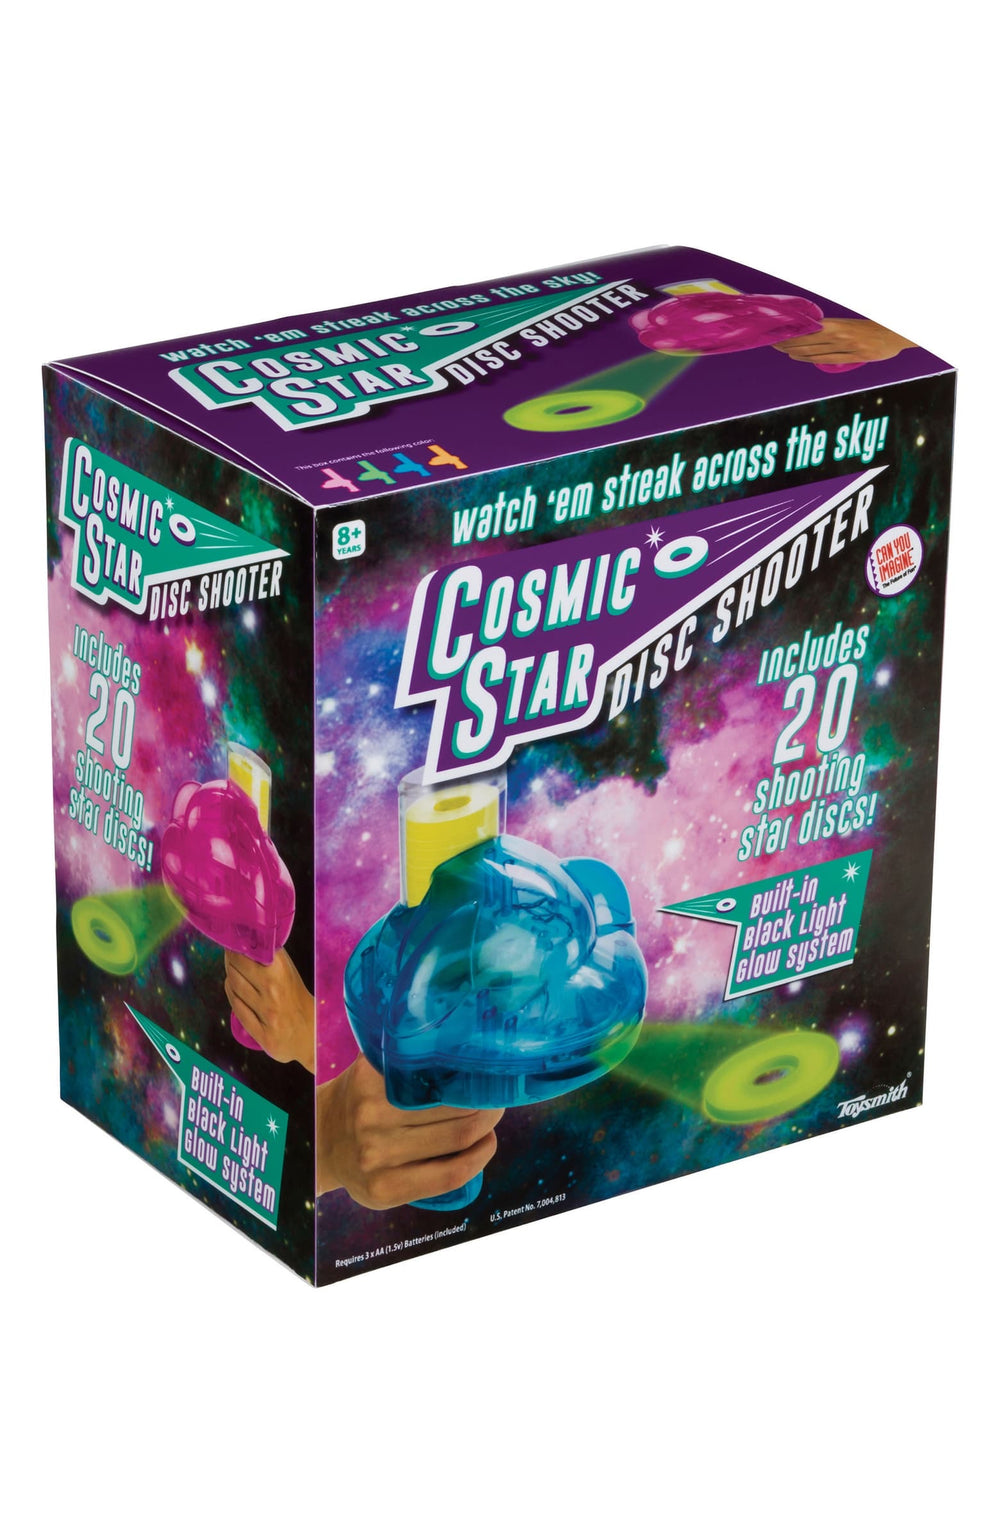 Cosmic Star Disc Shooter